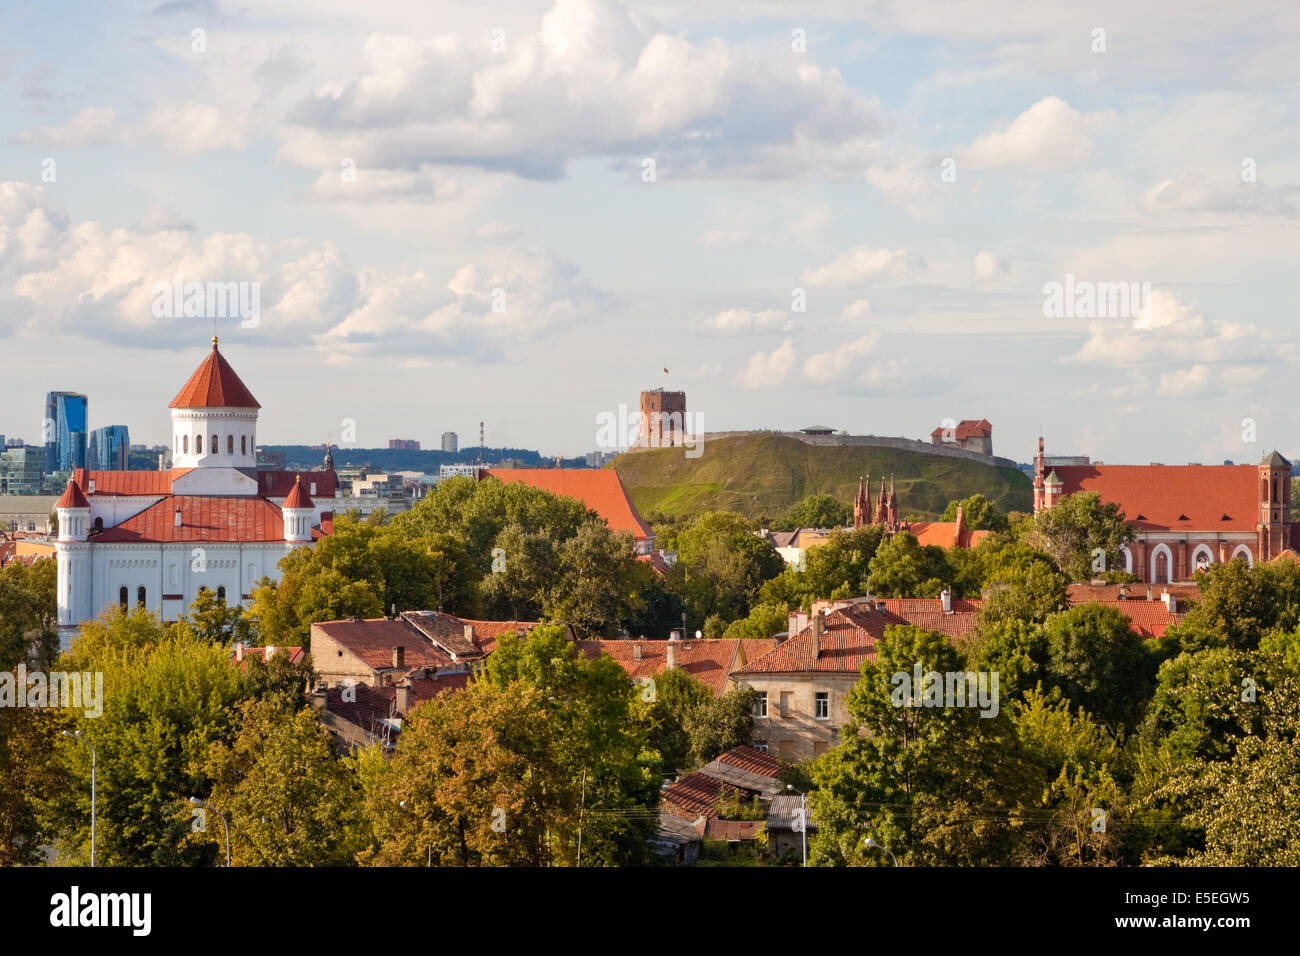 View of Vilnius - Stock Image